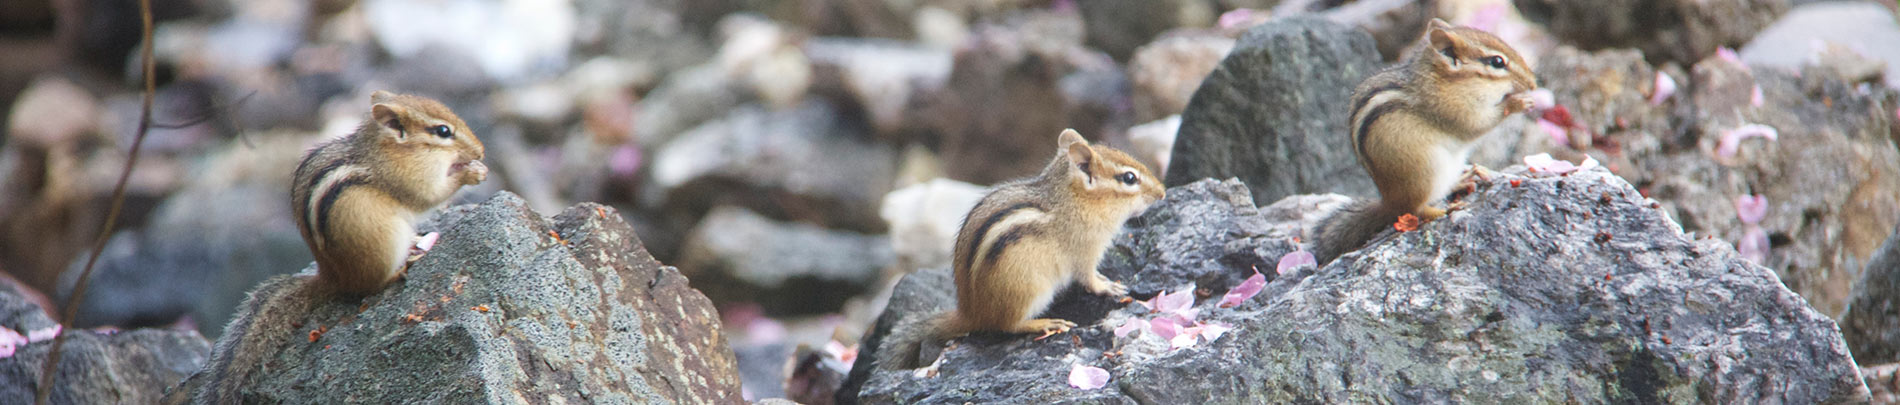 A family of chipmunks sit on some rocks.